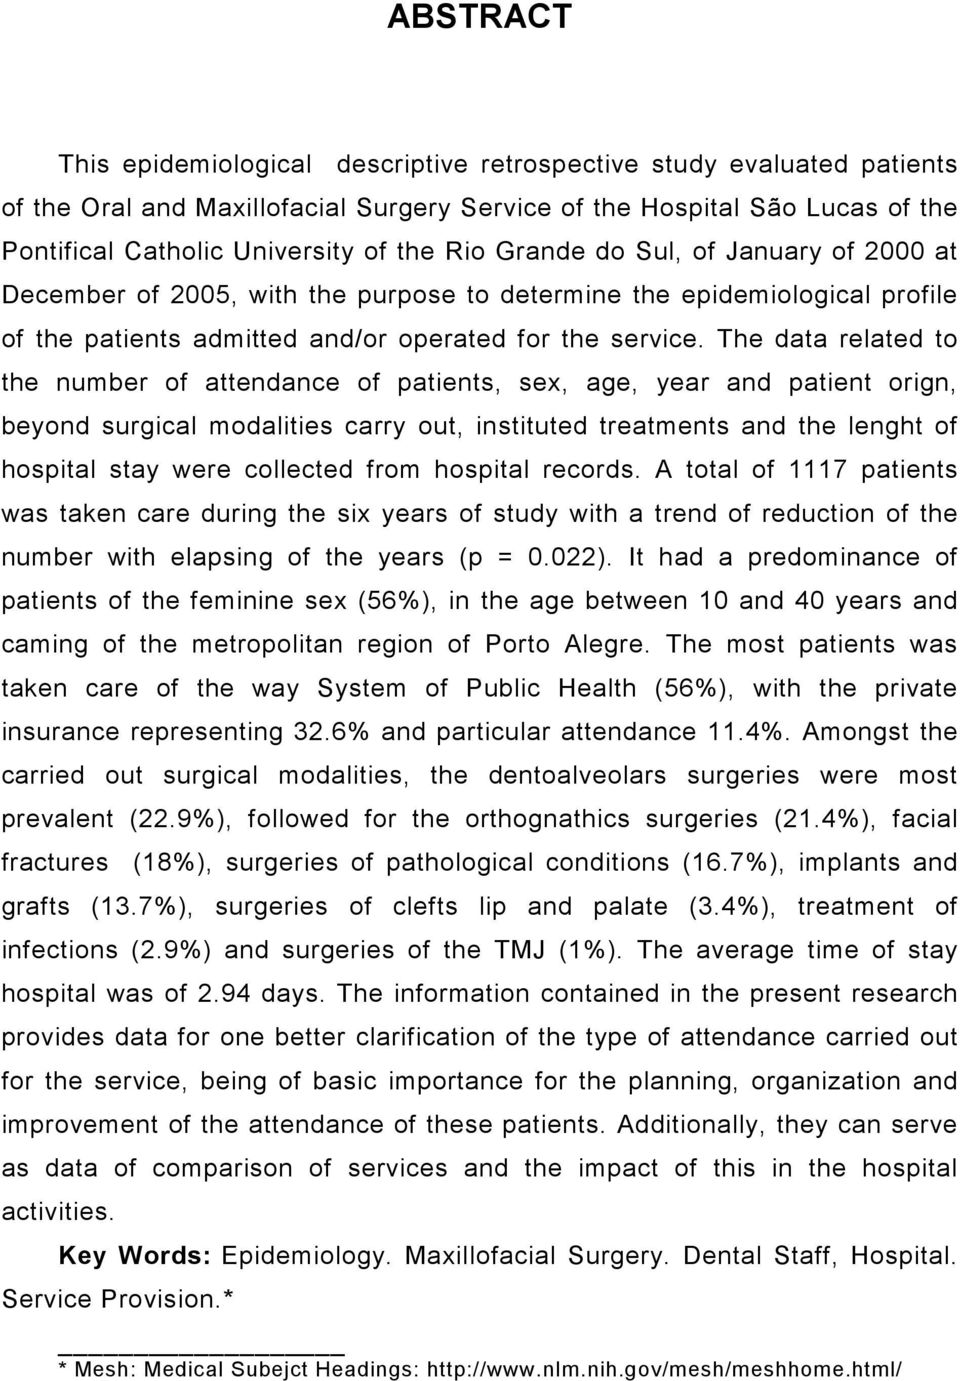 The data related to the number of attendance of patients, sex, age, year and patient orign, beyond surgical modalities carry out, instituted treatments and the lenght of hospital stay were collected